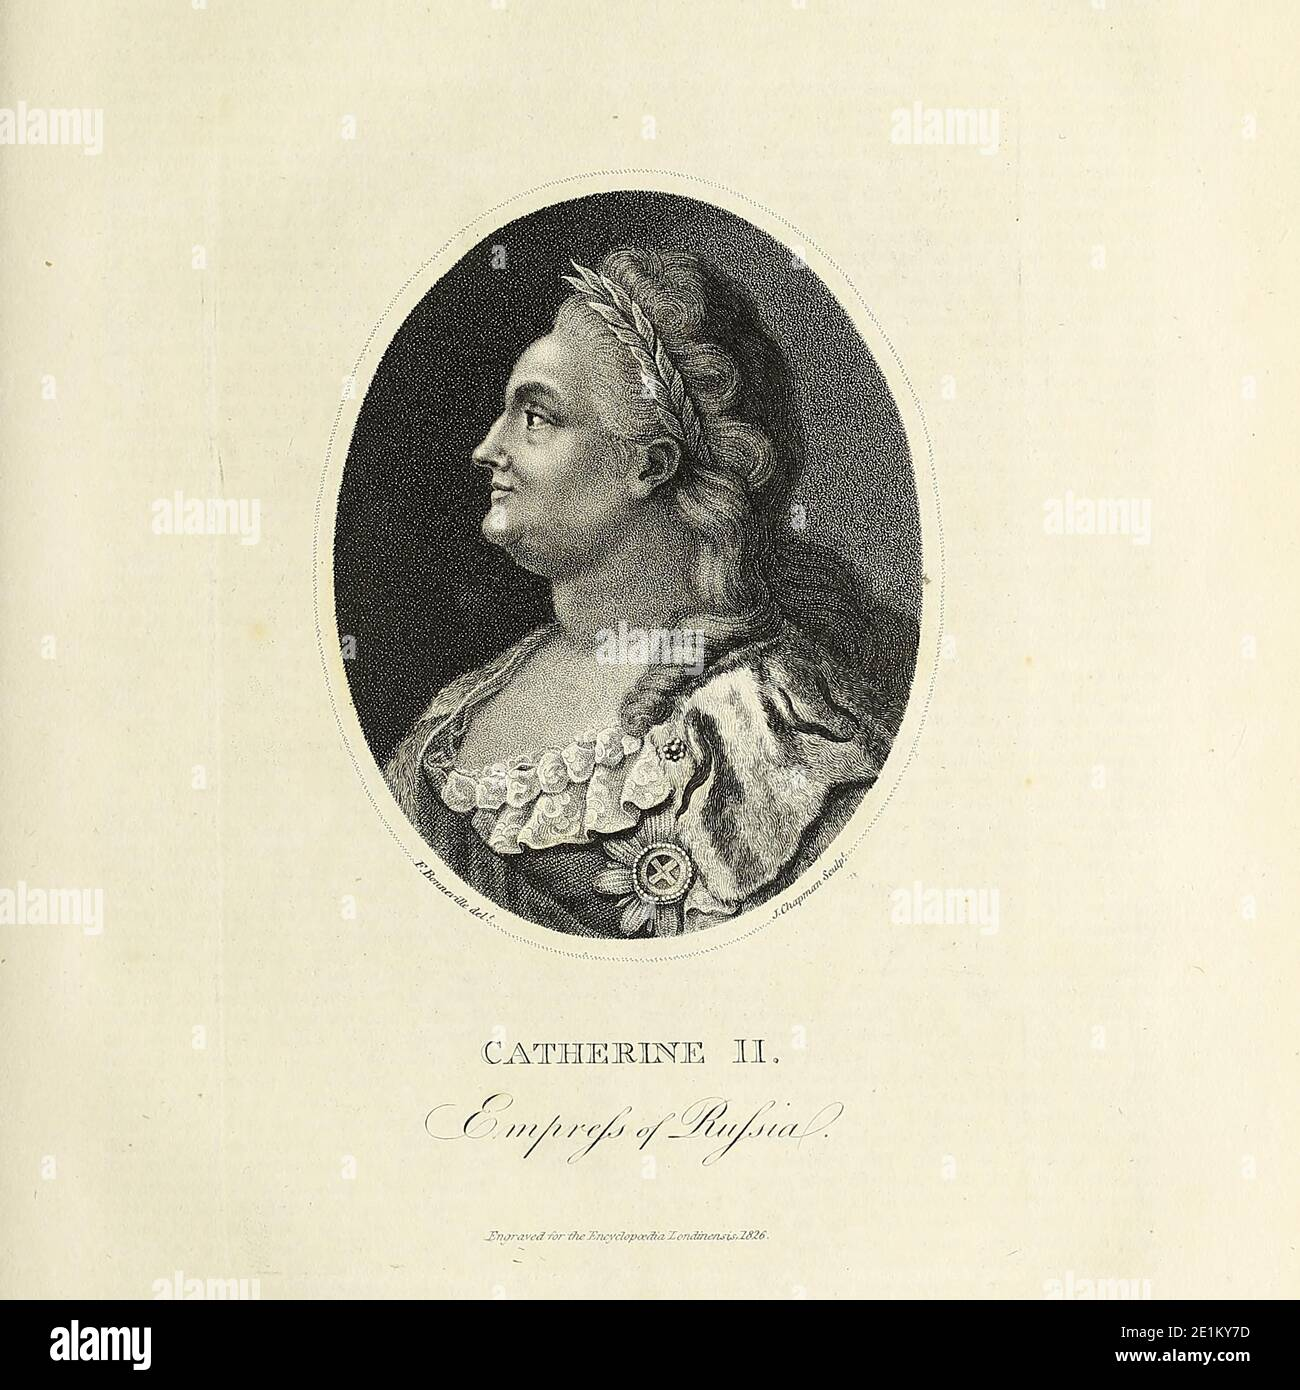 Catherine II (born Sophie of Anhalt-Zerbst; 2 May 1729 in Szczecin – 17 November 1796), most commonly known as Catherine the Great, was Empress of All Russia from 1762 until 1796—the country's longest-ruling female leader. She came to power following a coup d'état that overthrew her husband and second cousin, Peter III. Under her reign, Russia grew larger, its culture was revitalised, and it was recognized as one of the great powers worldwide. Copperplate engraving From the Encyclopaedia Londinensis or, Universal dictionary of arts, sciences, and literature; Volume XXII;  Edited by Wilkes, Joh Stock Photo